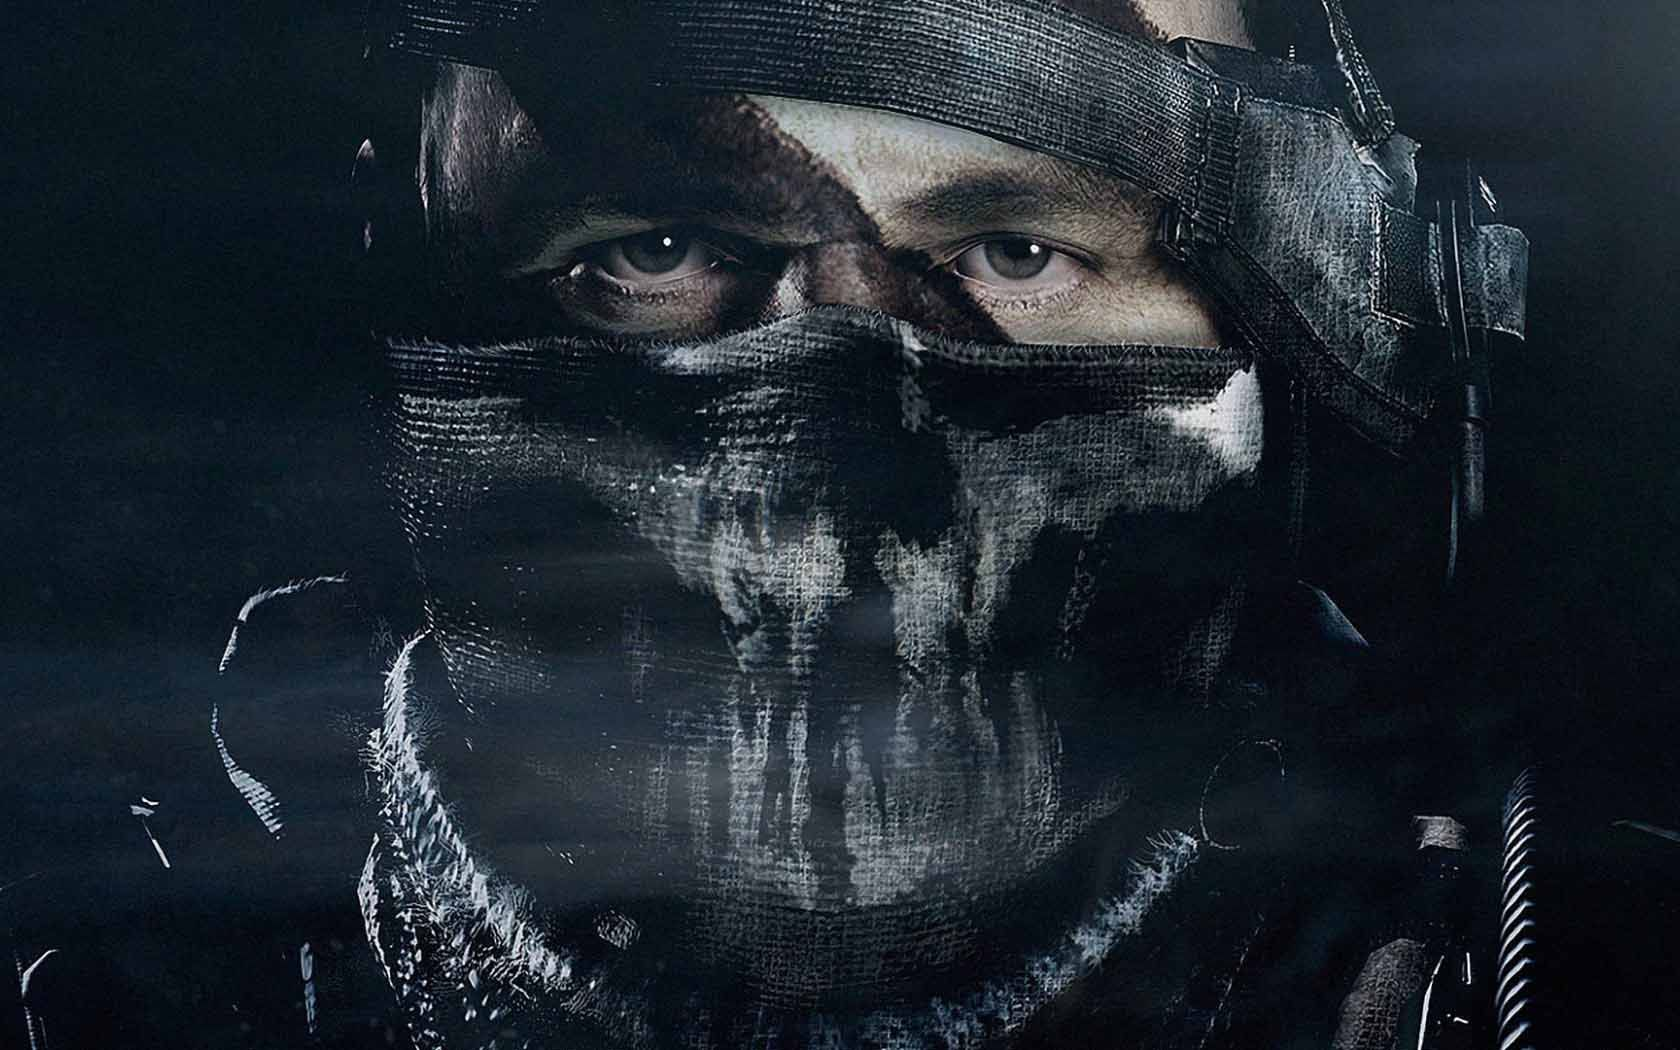 Call Of Duty Ghosts Wallpaper 36 Wallpaper Background Hd